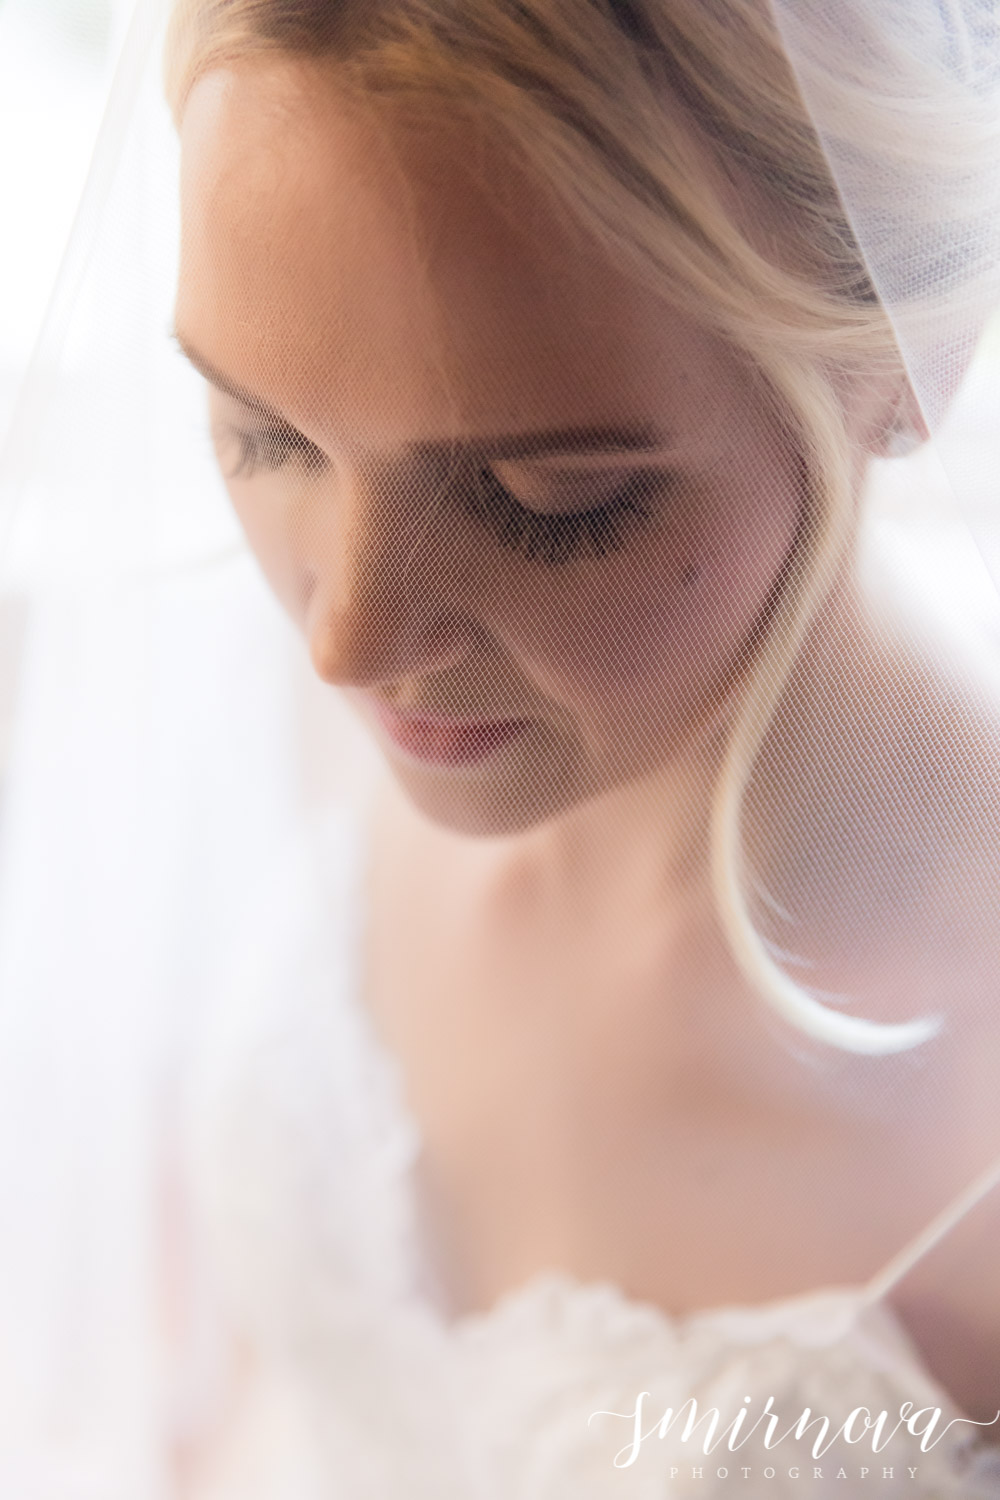 bride wedding portraits Smirnova Photography by Alyssa